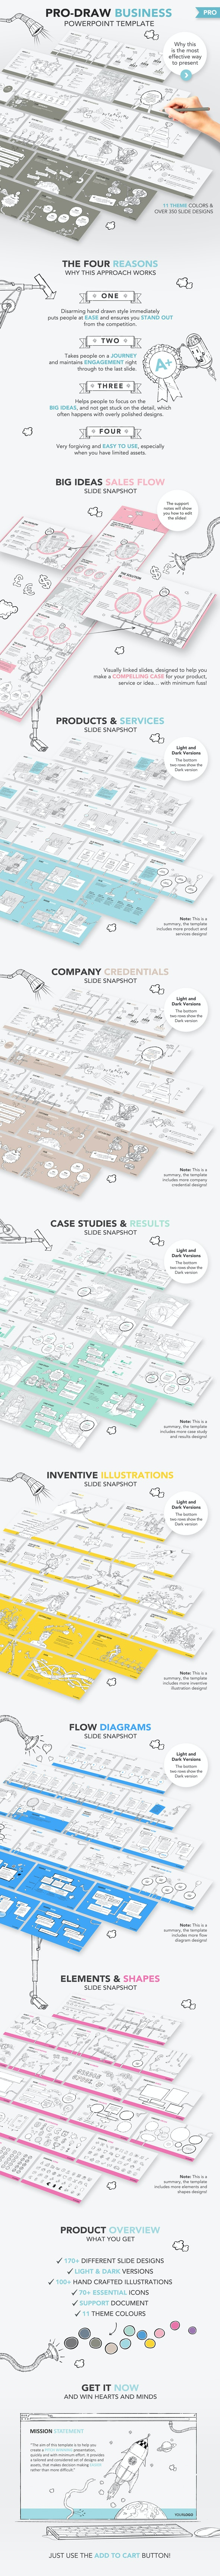 Pro-Draw Business Pitch PowerPoint Template - Pitch Deck PowerPoint Templates